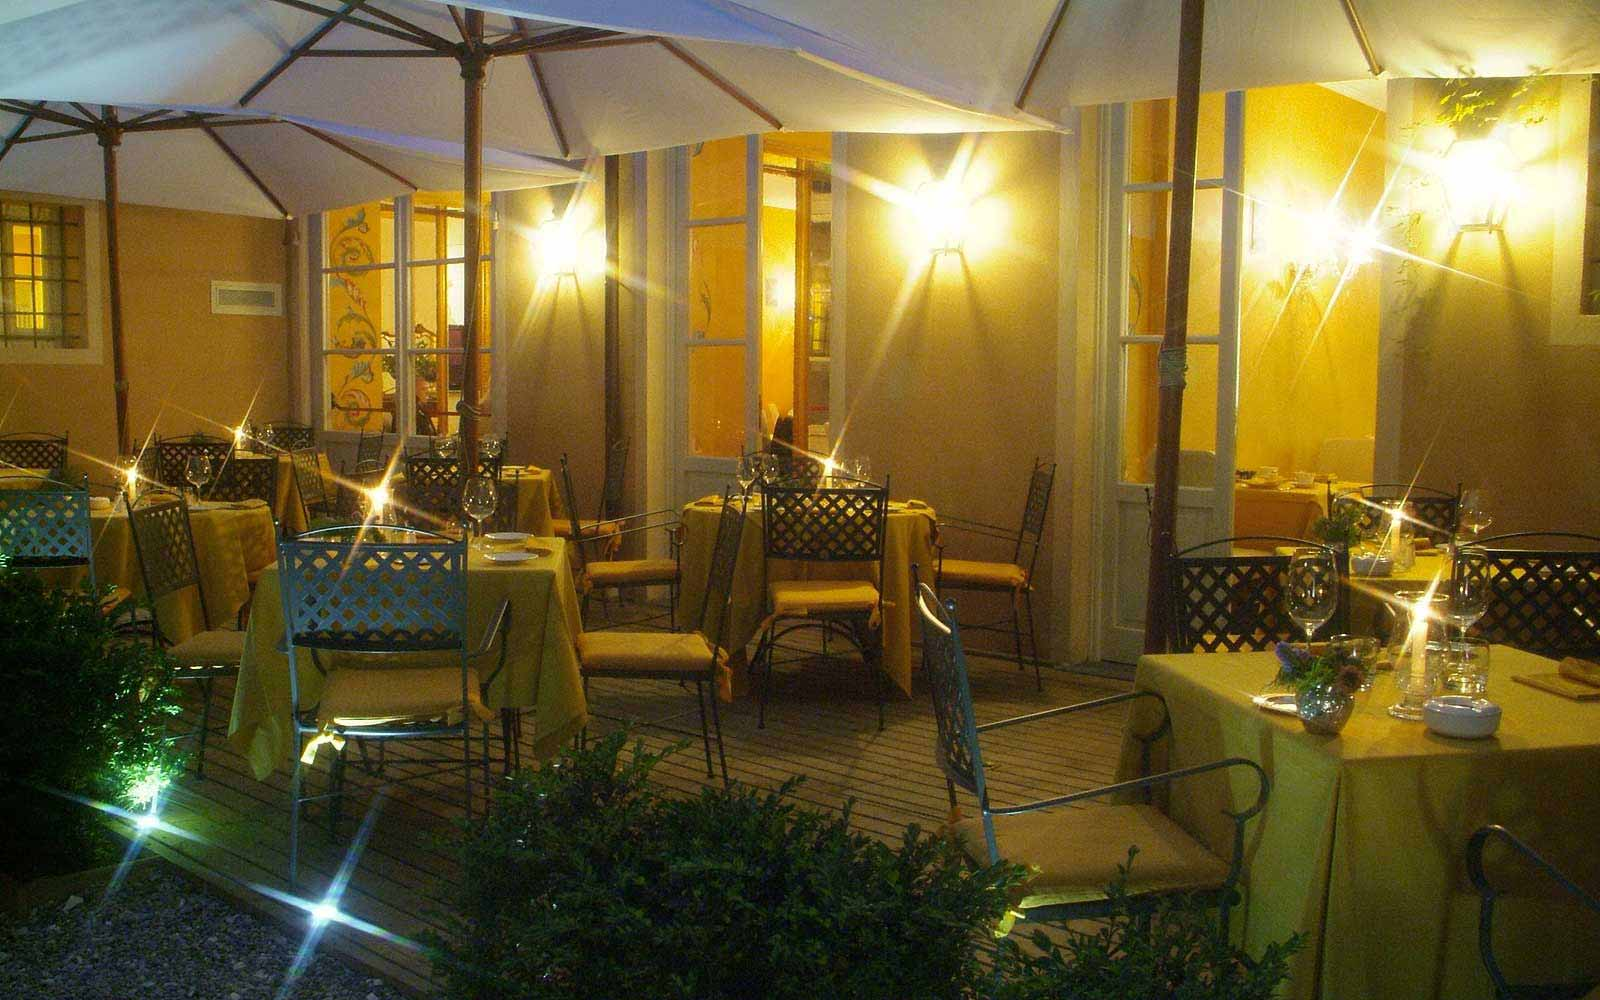 Terrace in the evening at Hotel Noblesse